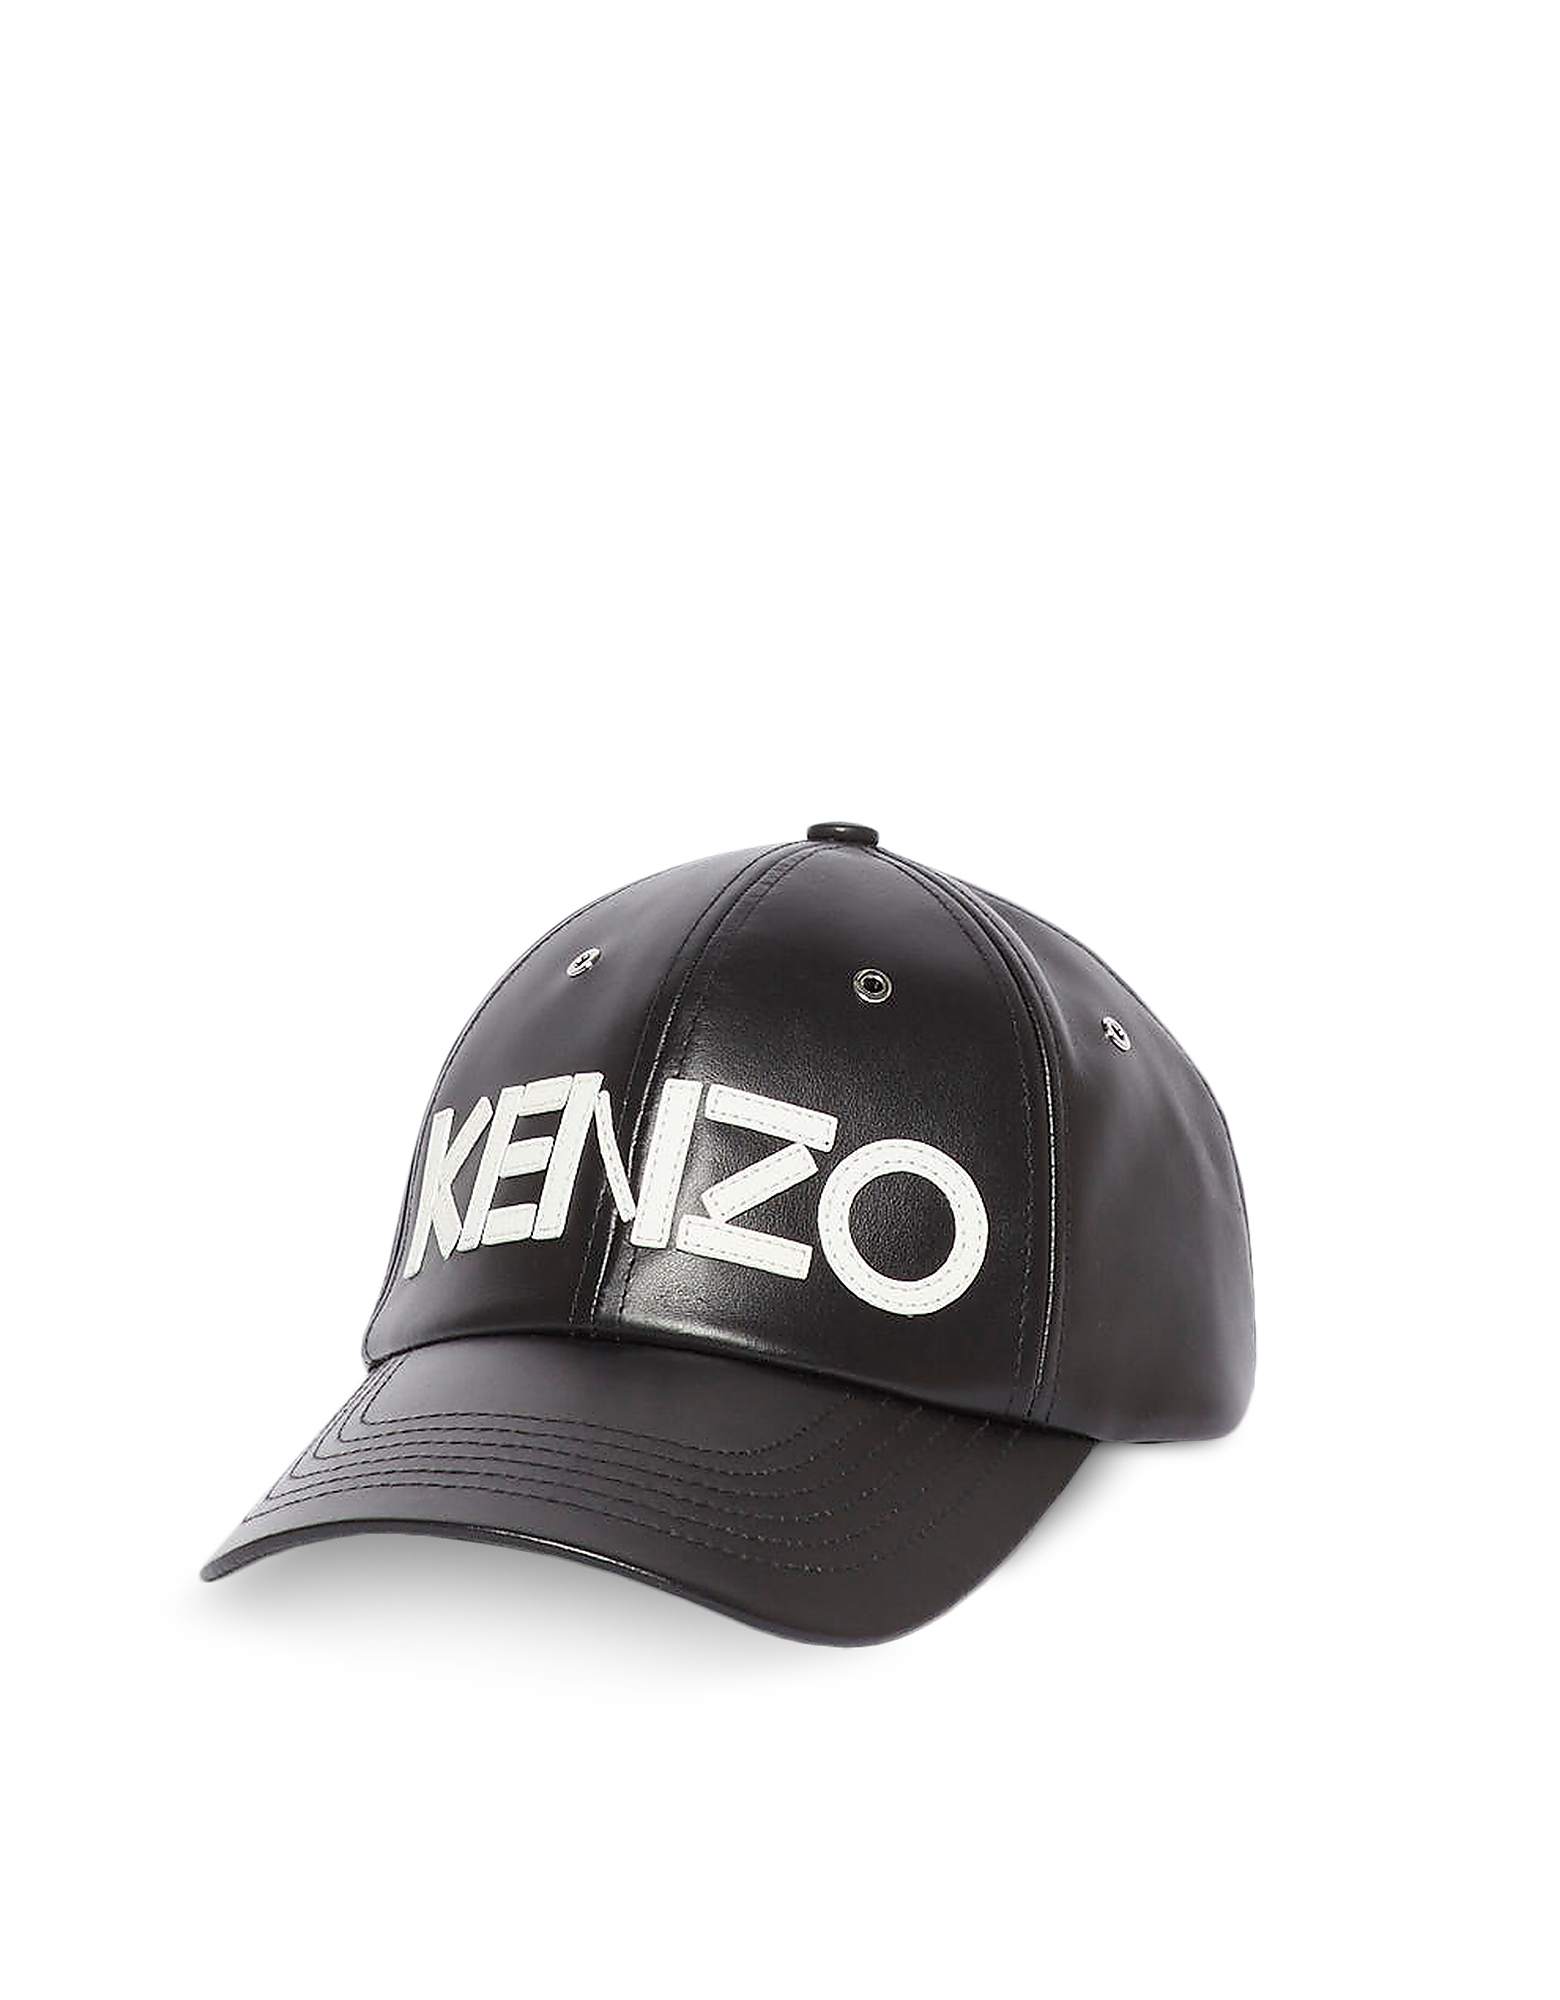 Kenzo Designer Men's Hats, Black Leather Signature Baseball Cap